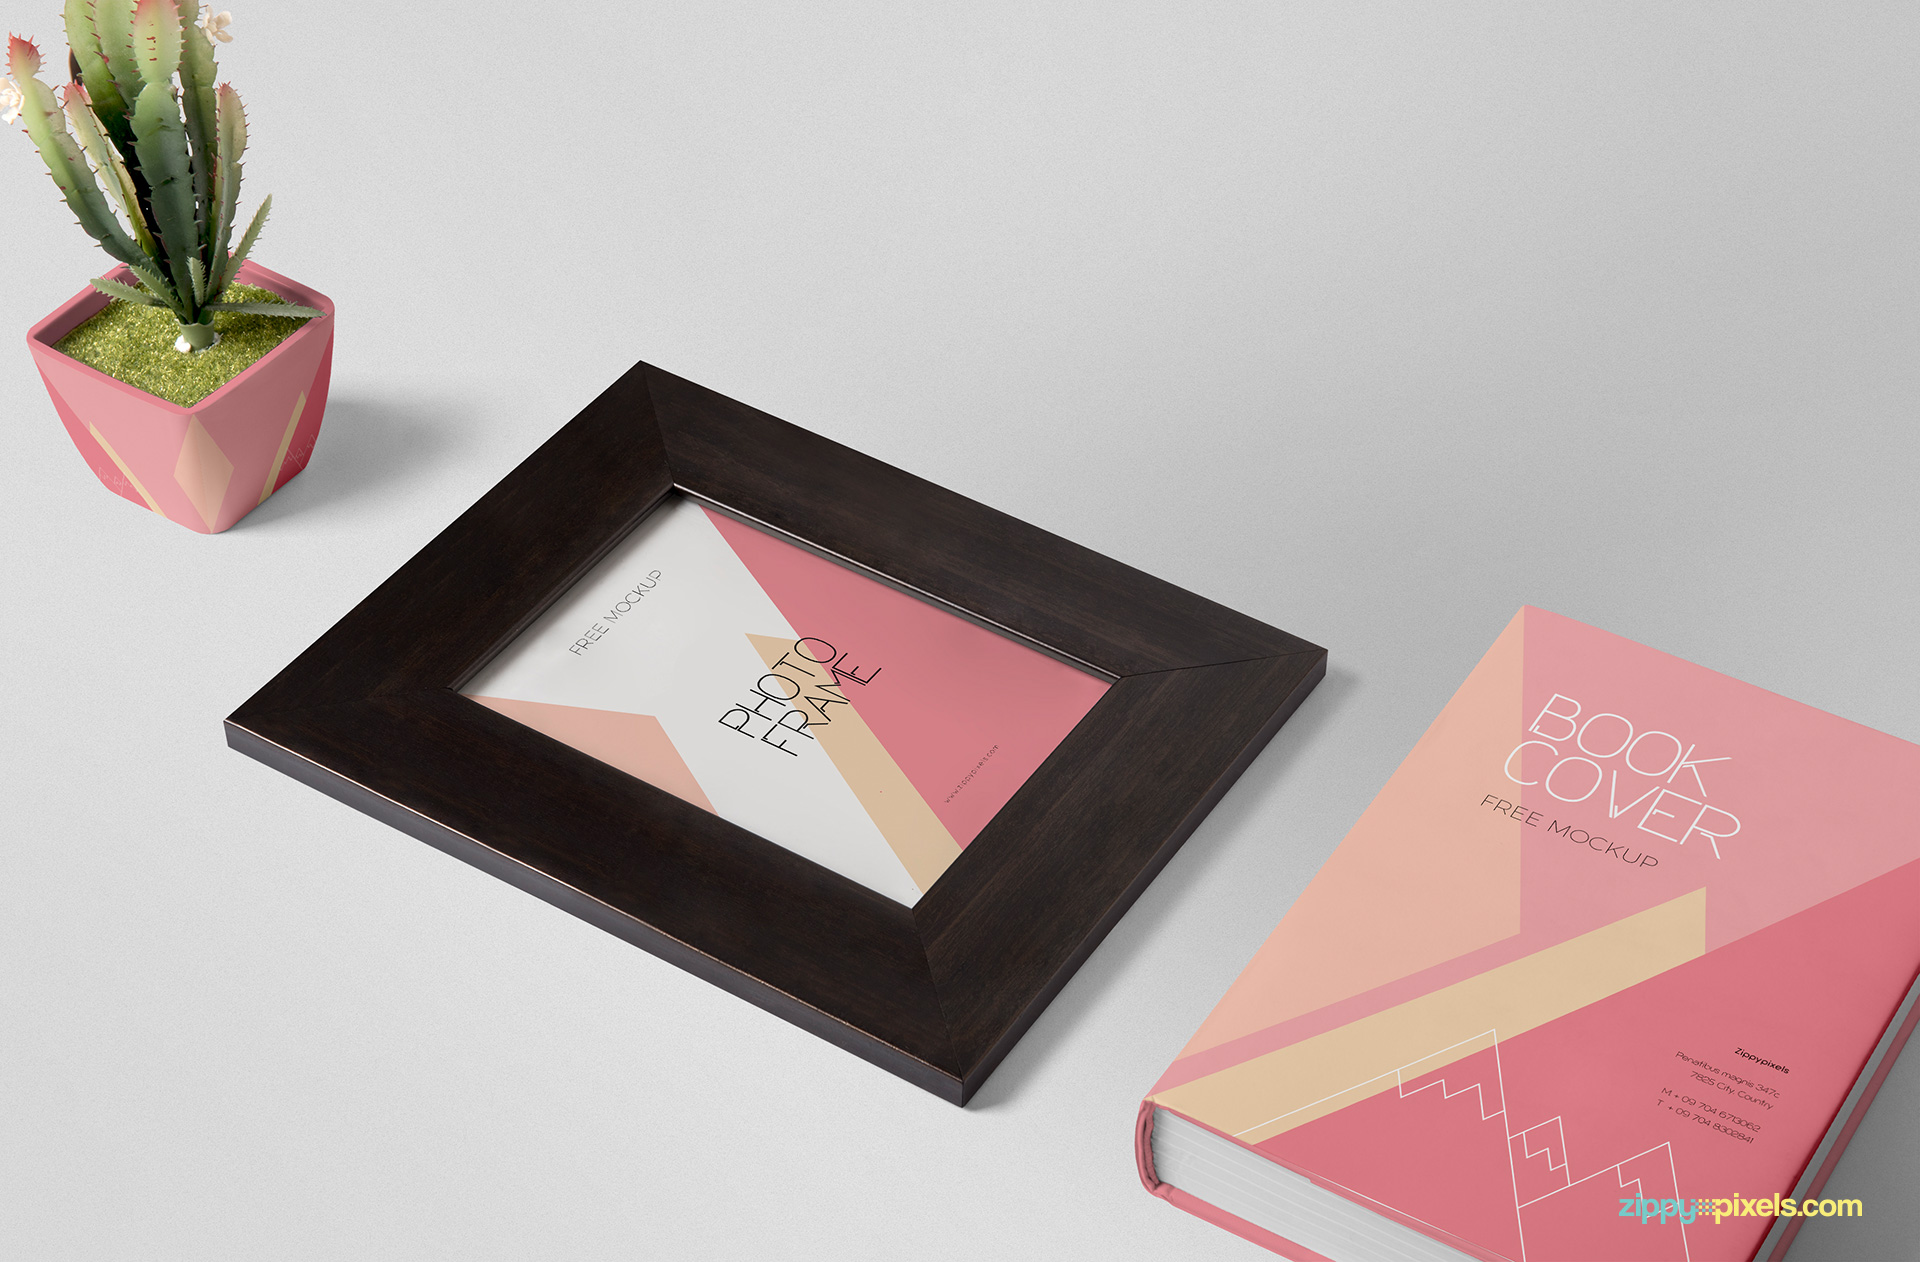 Frame mockup PSD scene including a picture frame, plant pot and book cover.